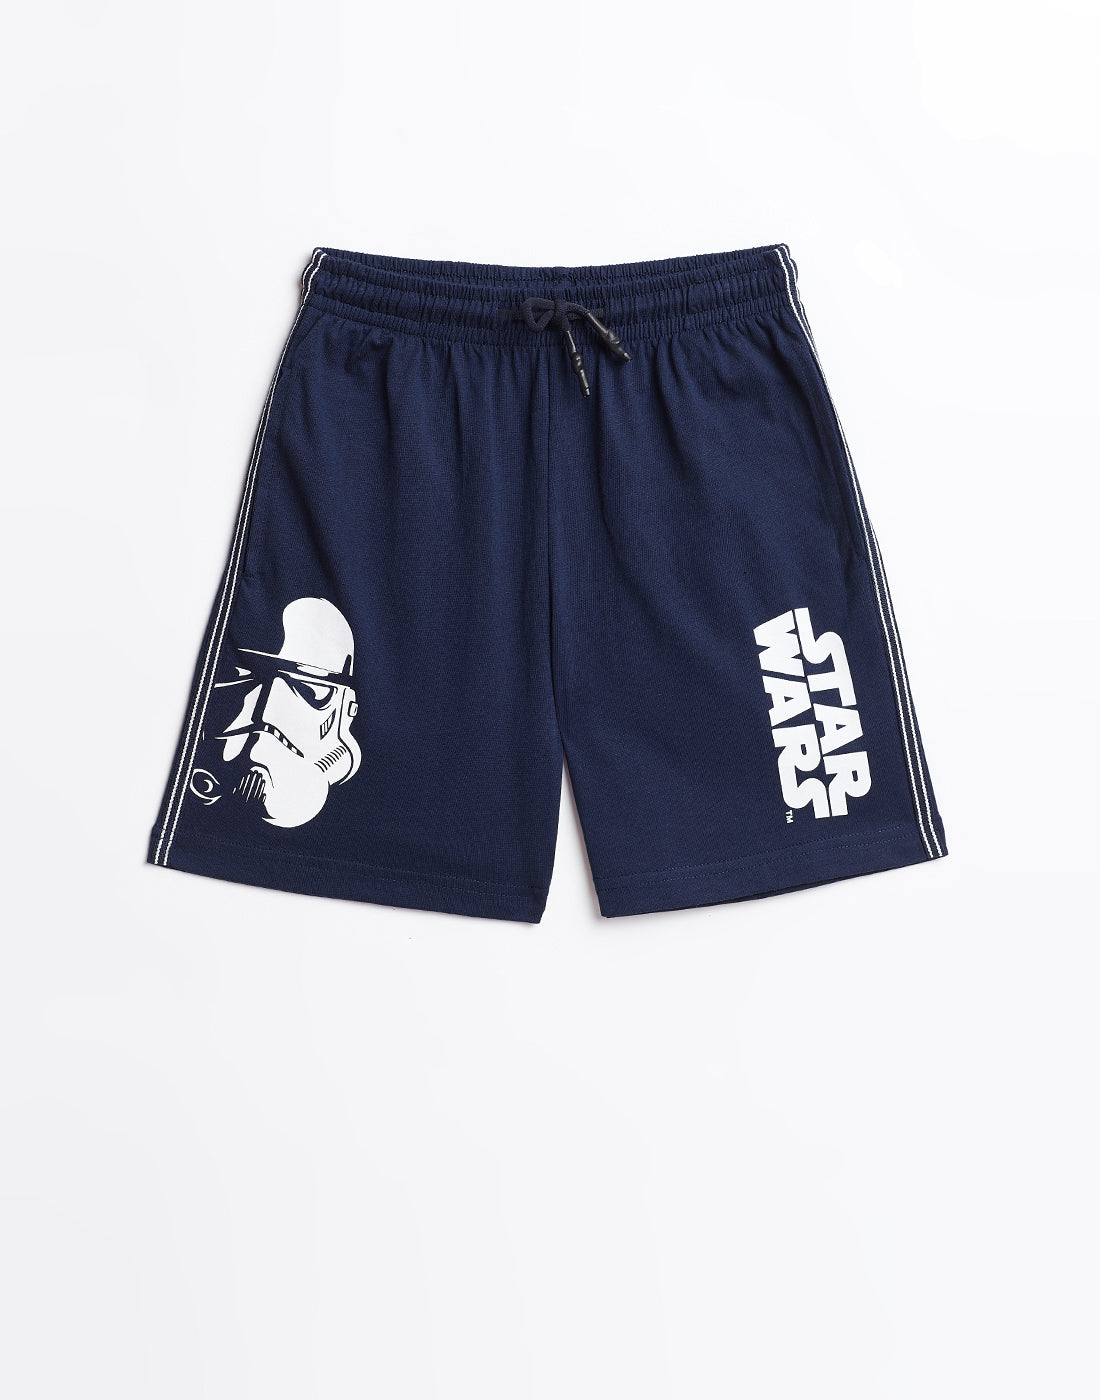 Ooctave Boys Indigo Blue STAR WARS Printed Shorts